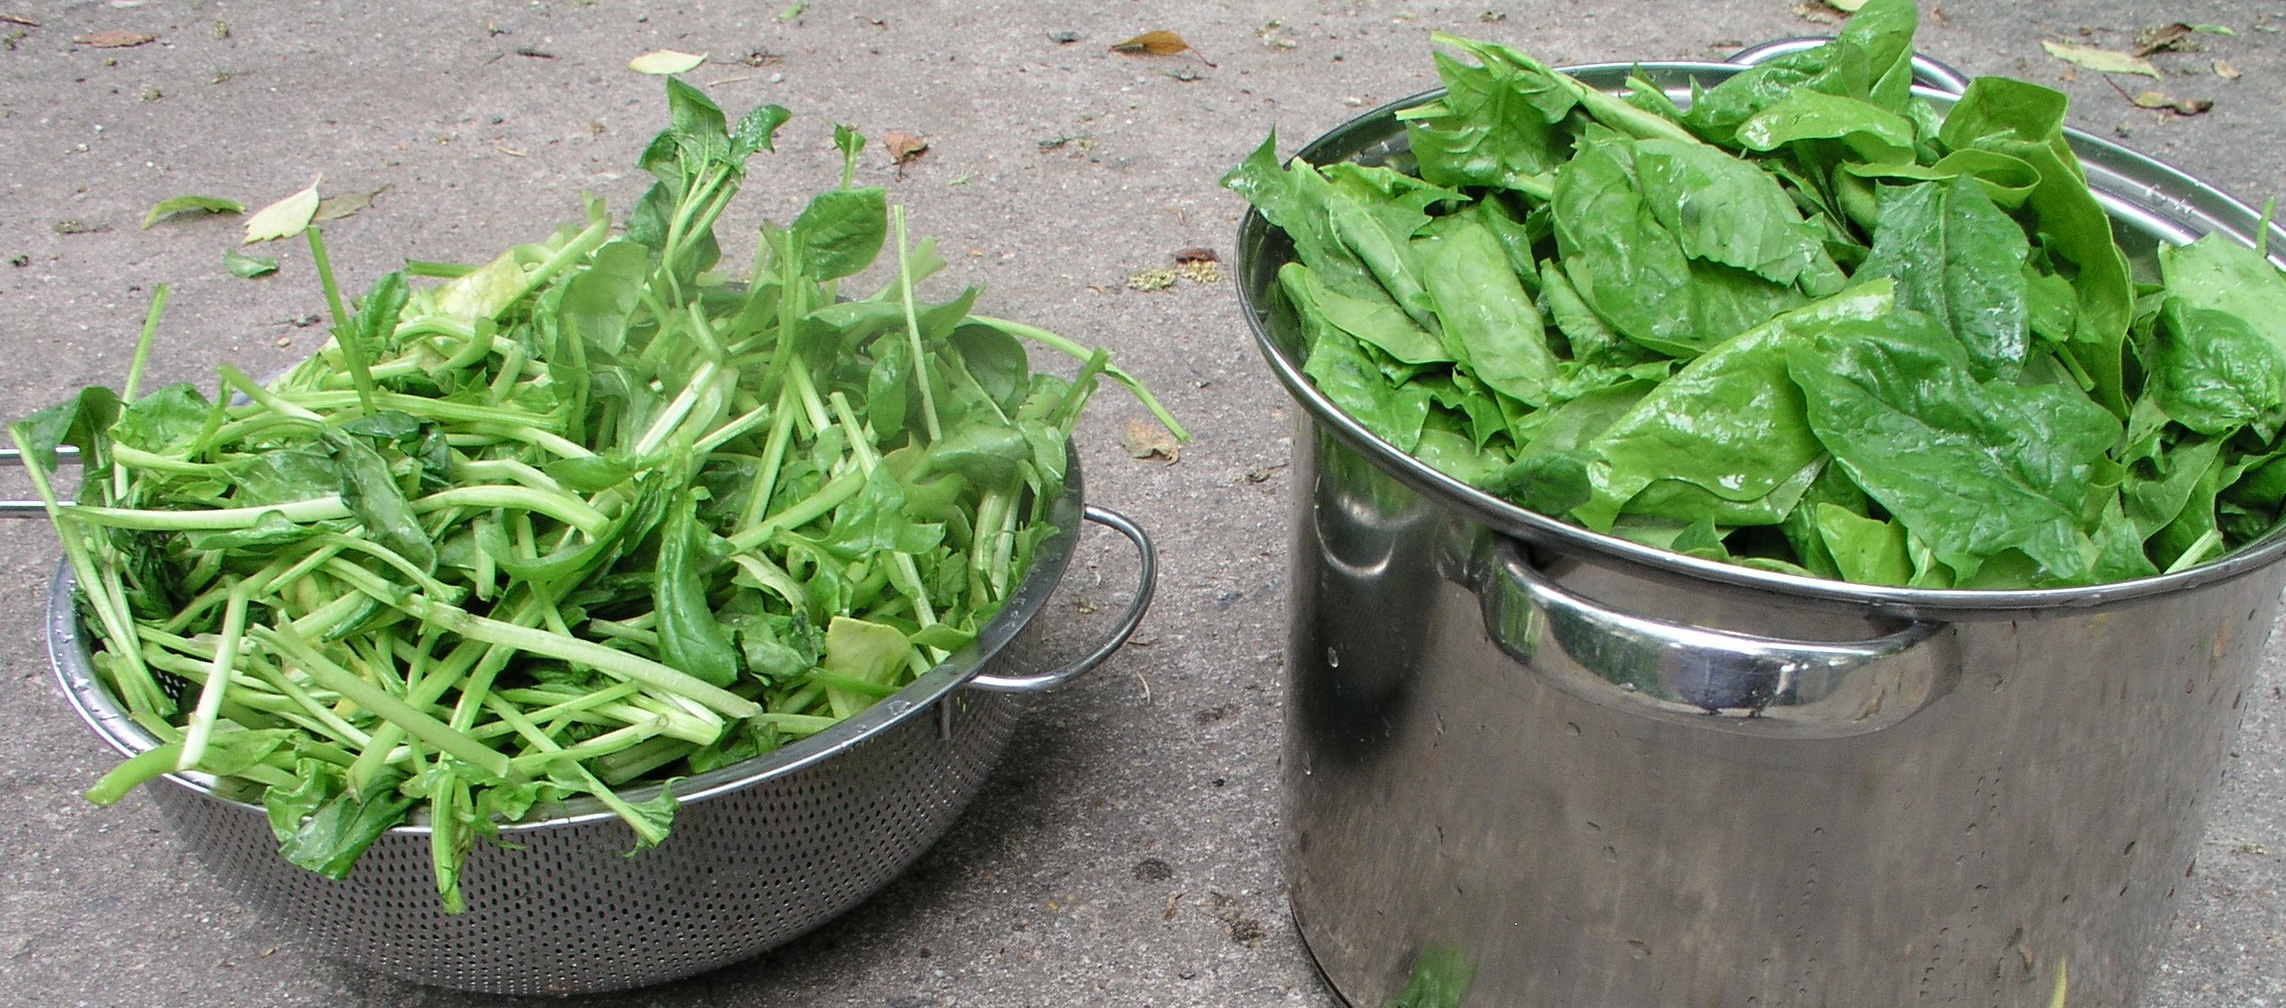 Spinach leaves and stems